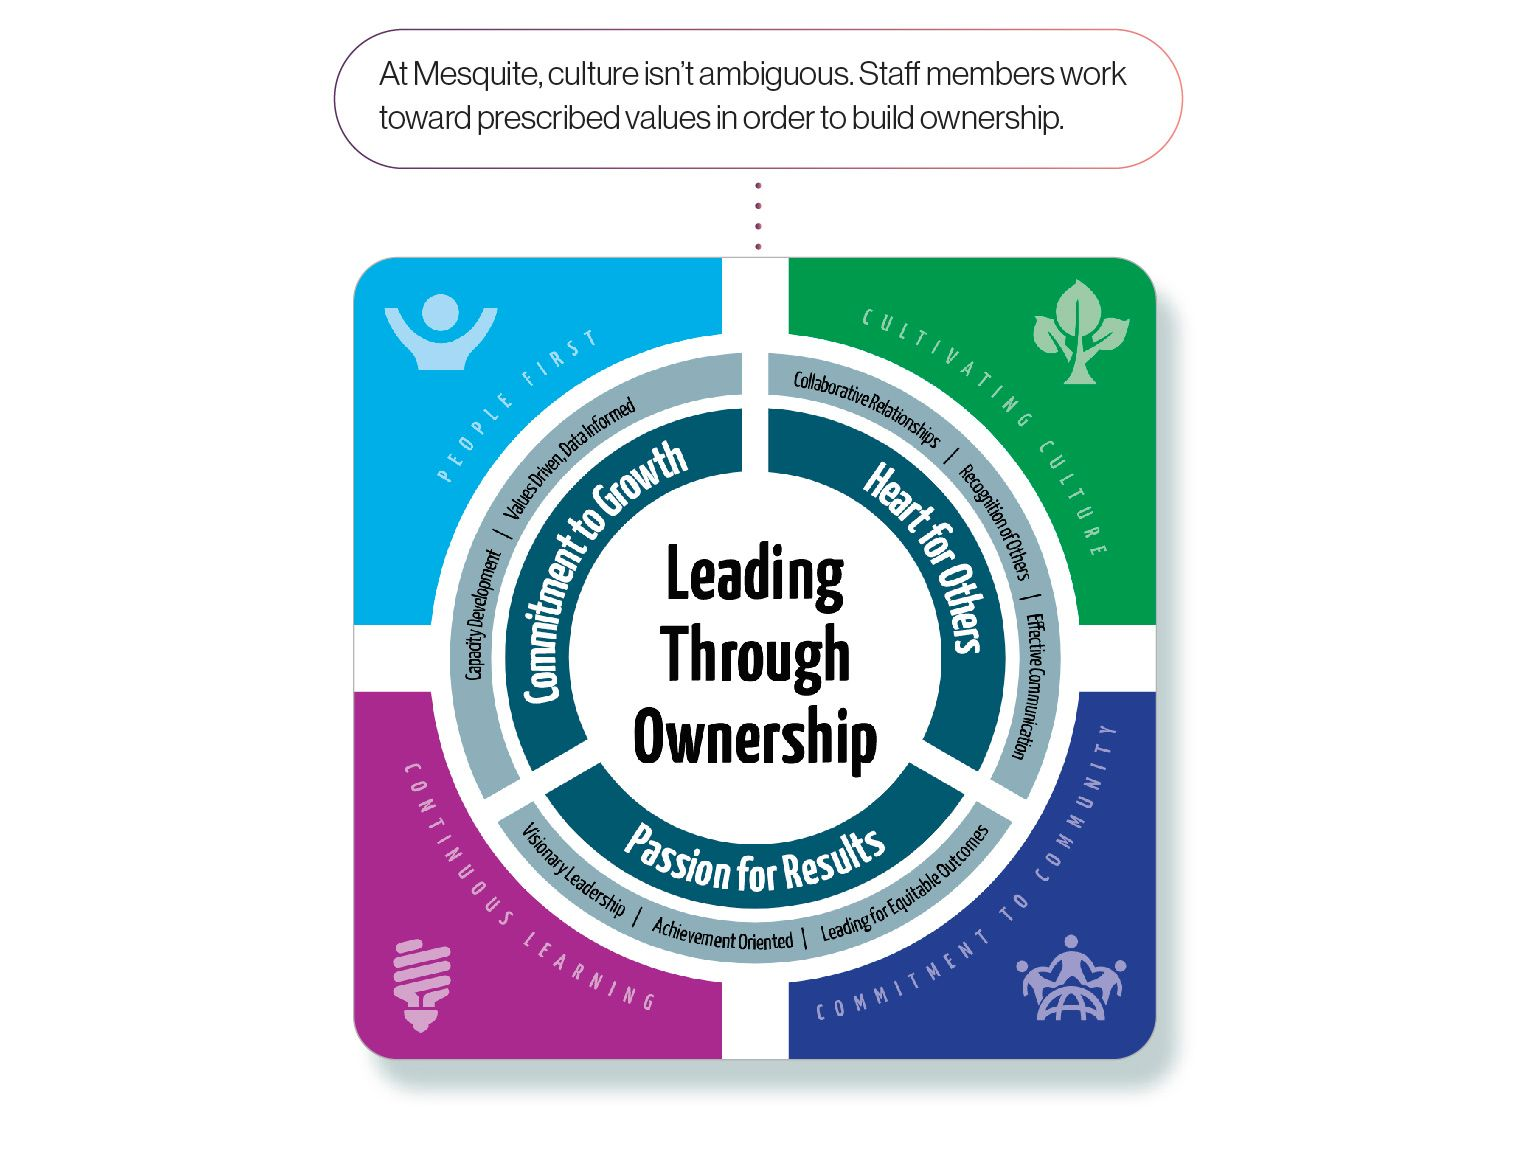 Image: Mesquite ISD Leading Through Ownership graphic, with the caption 'At Mesquite, culture isn't ambiguous. Staff members work toward prescribed values in order to build ownership.'